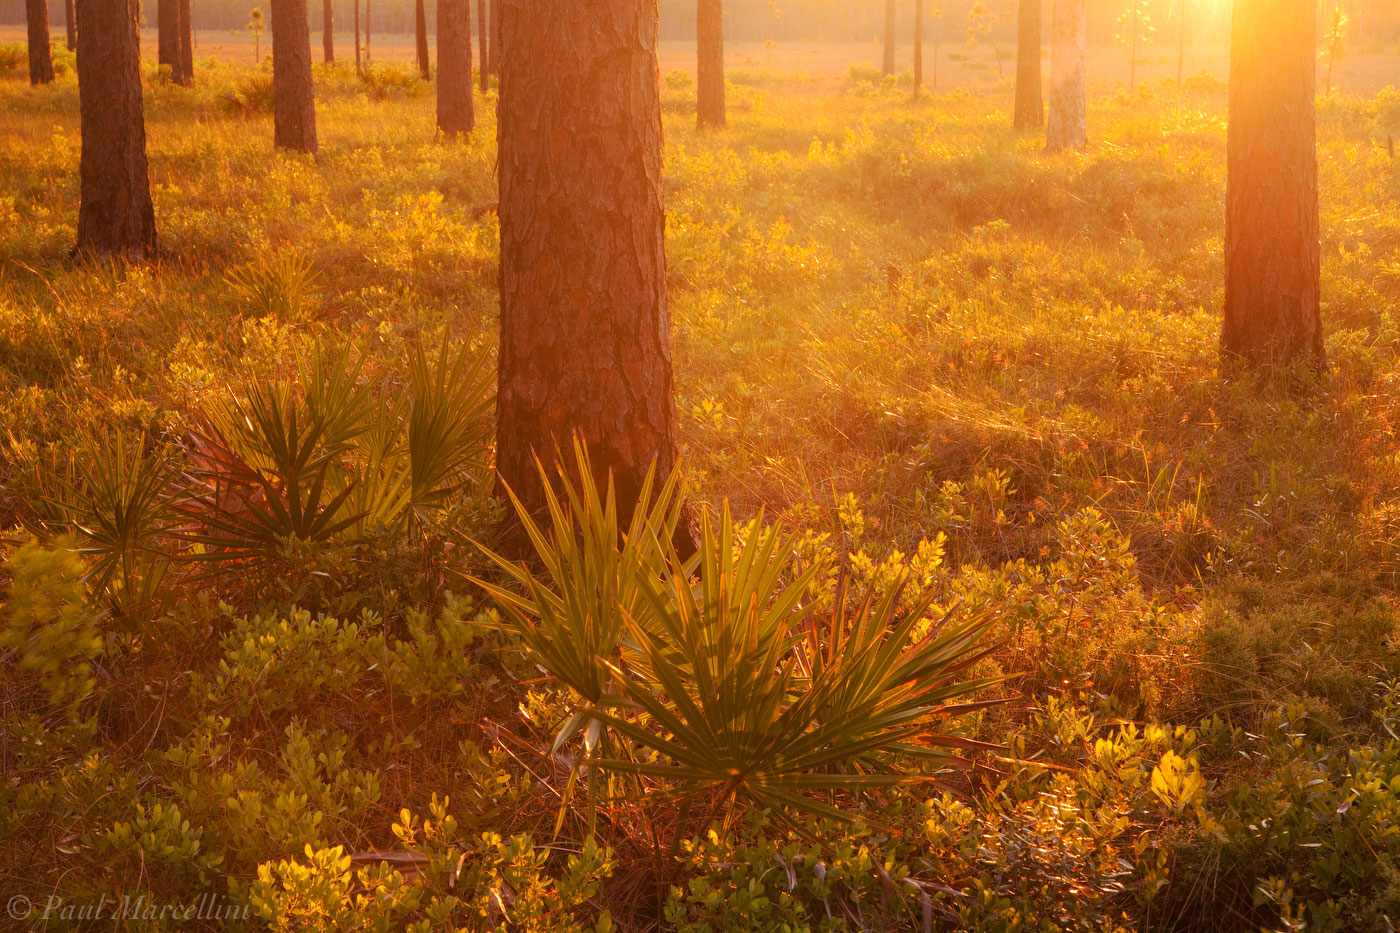 Apalachicola National Forest, Florida, Longleaf Pine, Pinus palustris, sunset, north florida, nature, photography, photo